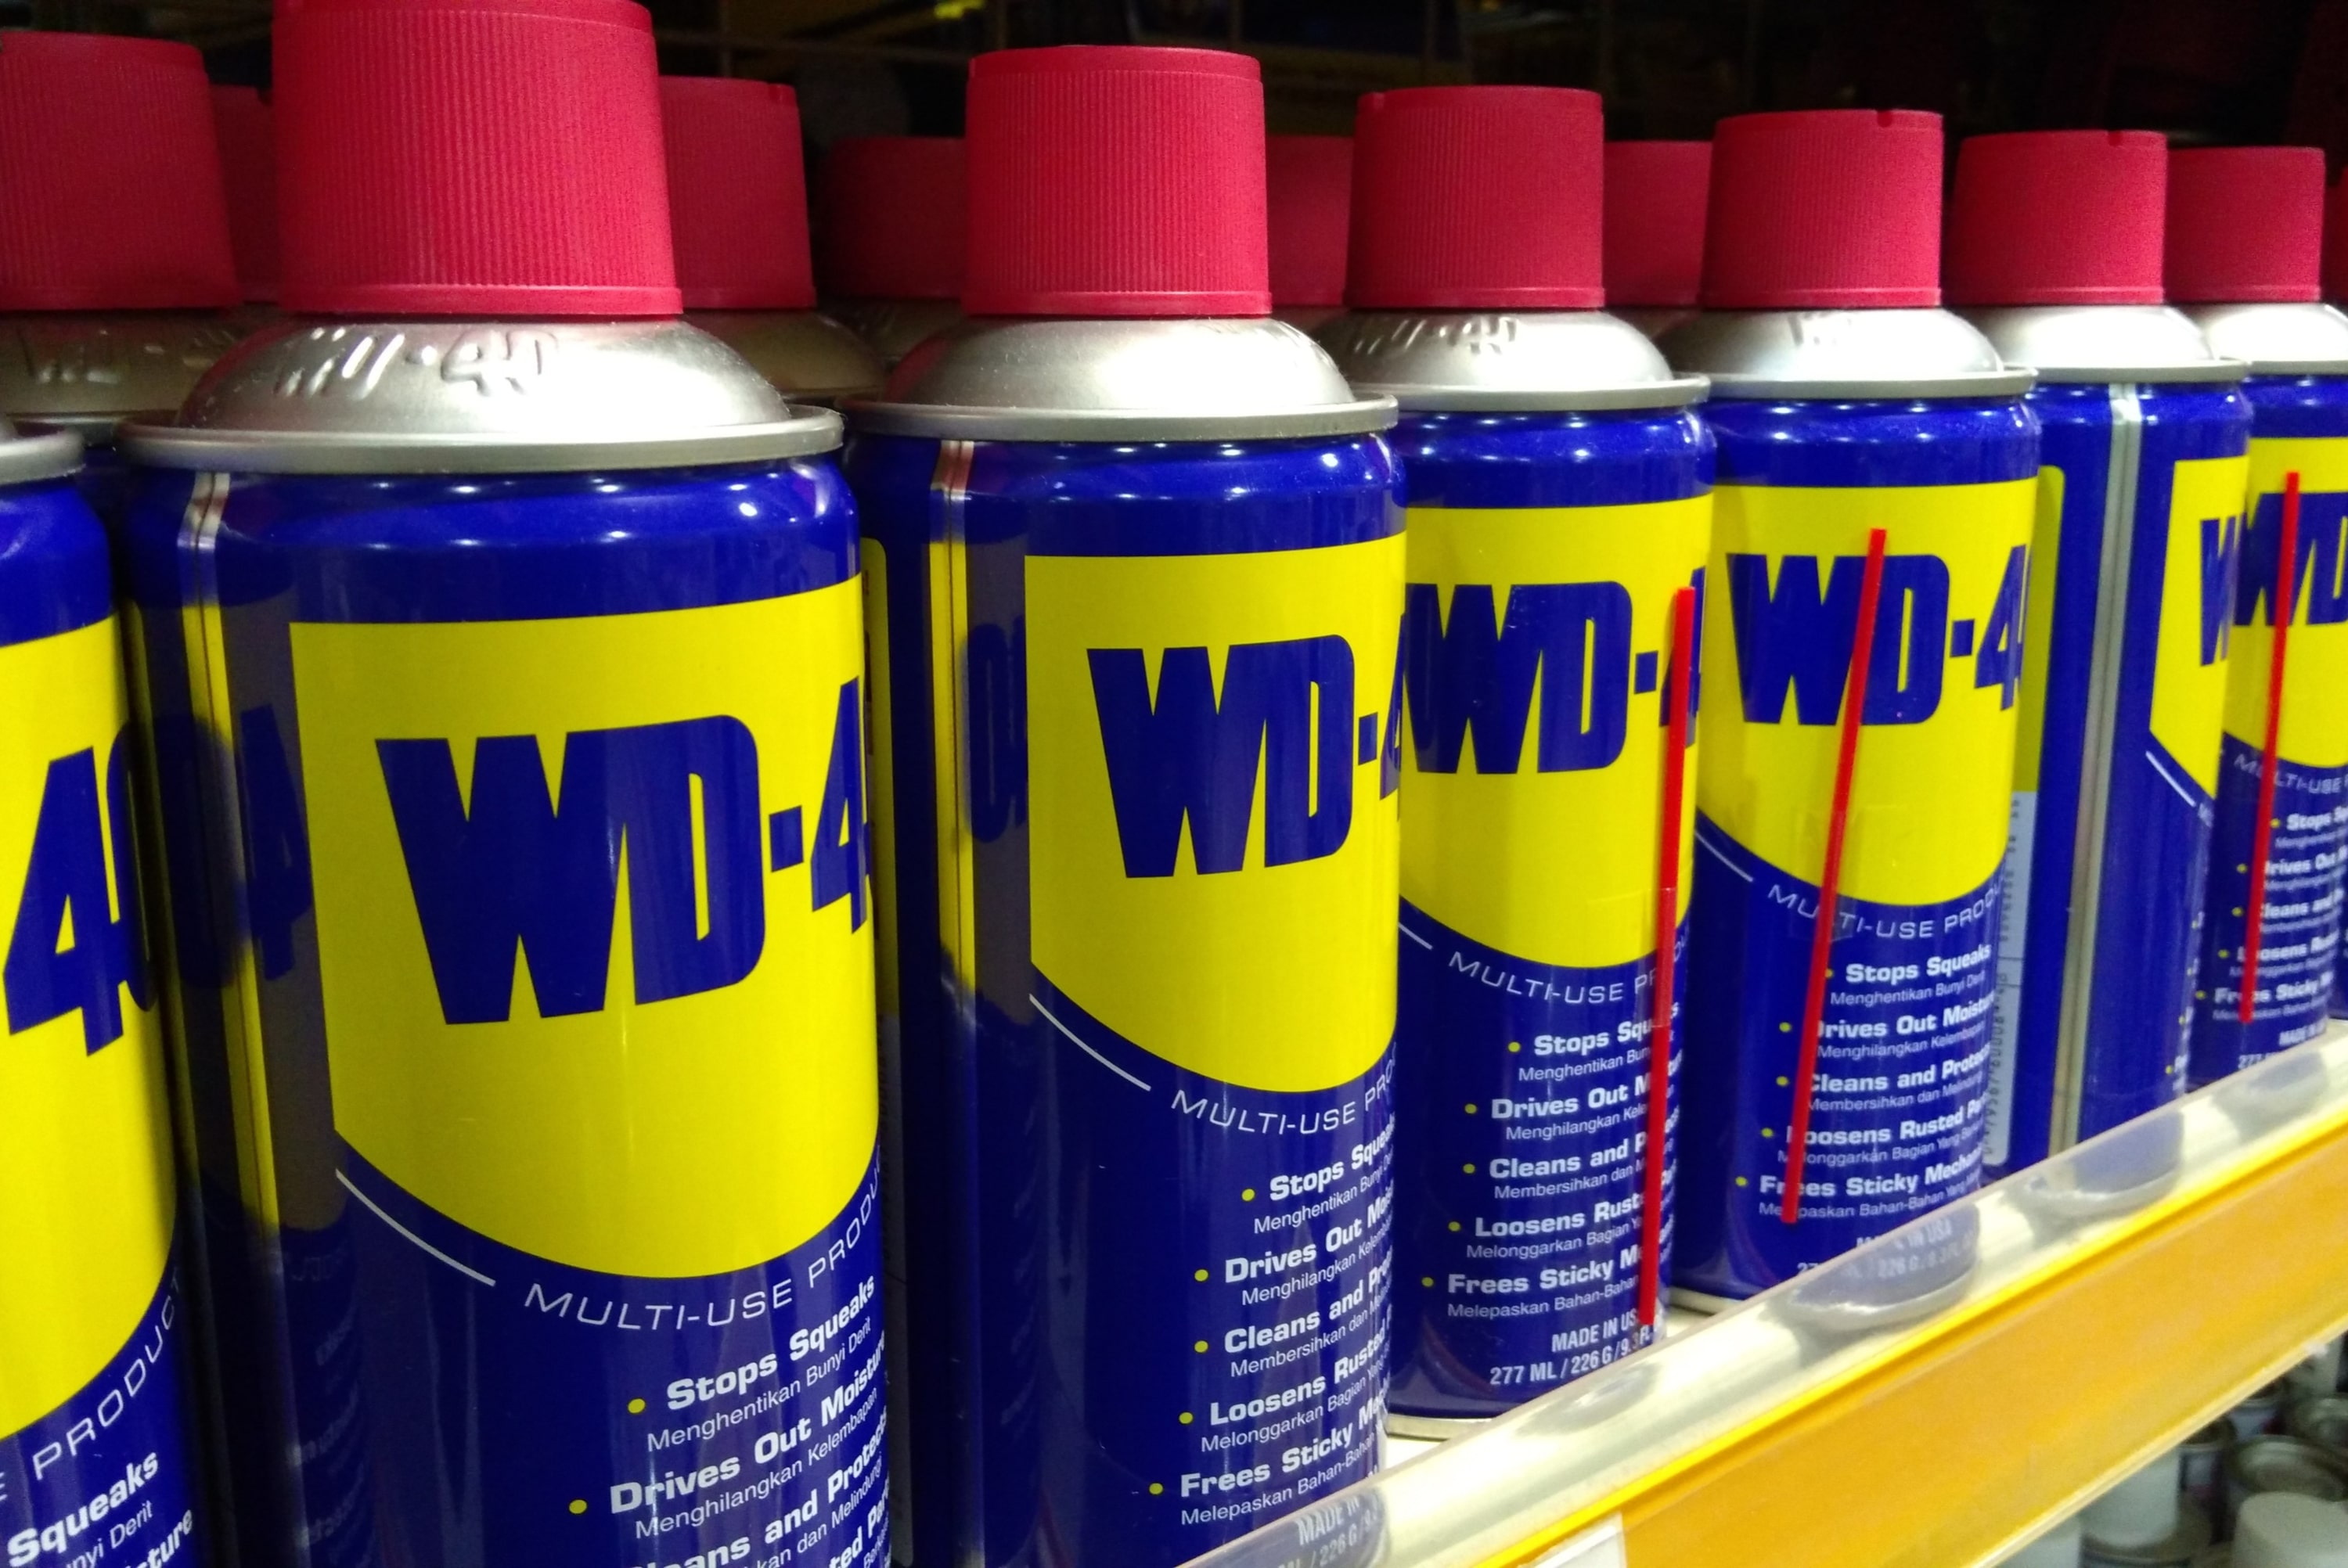 18 great wd-40 uses for around the house